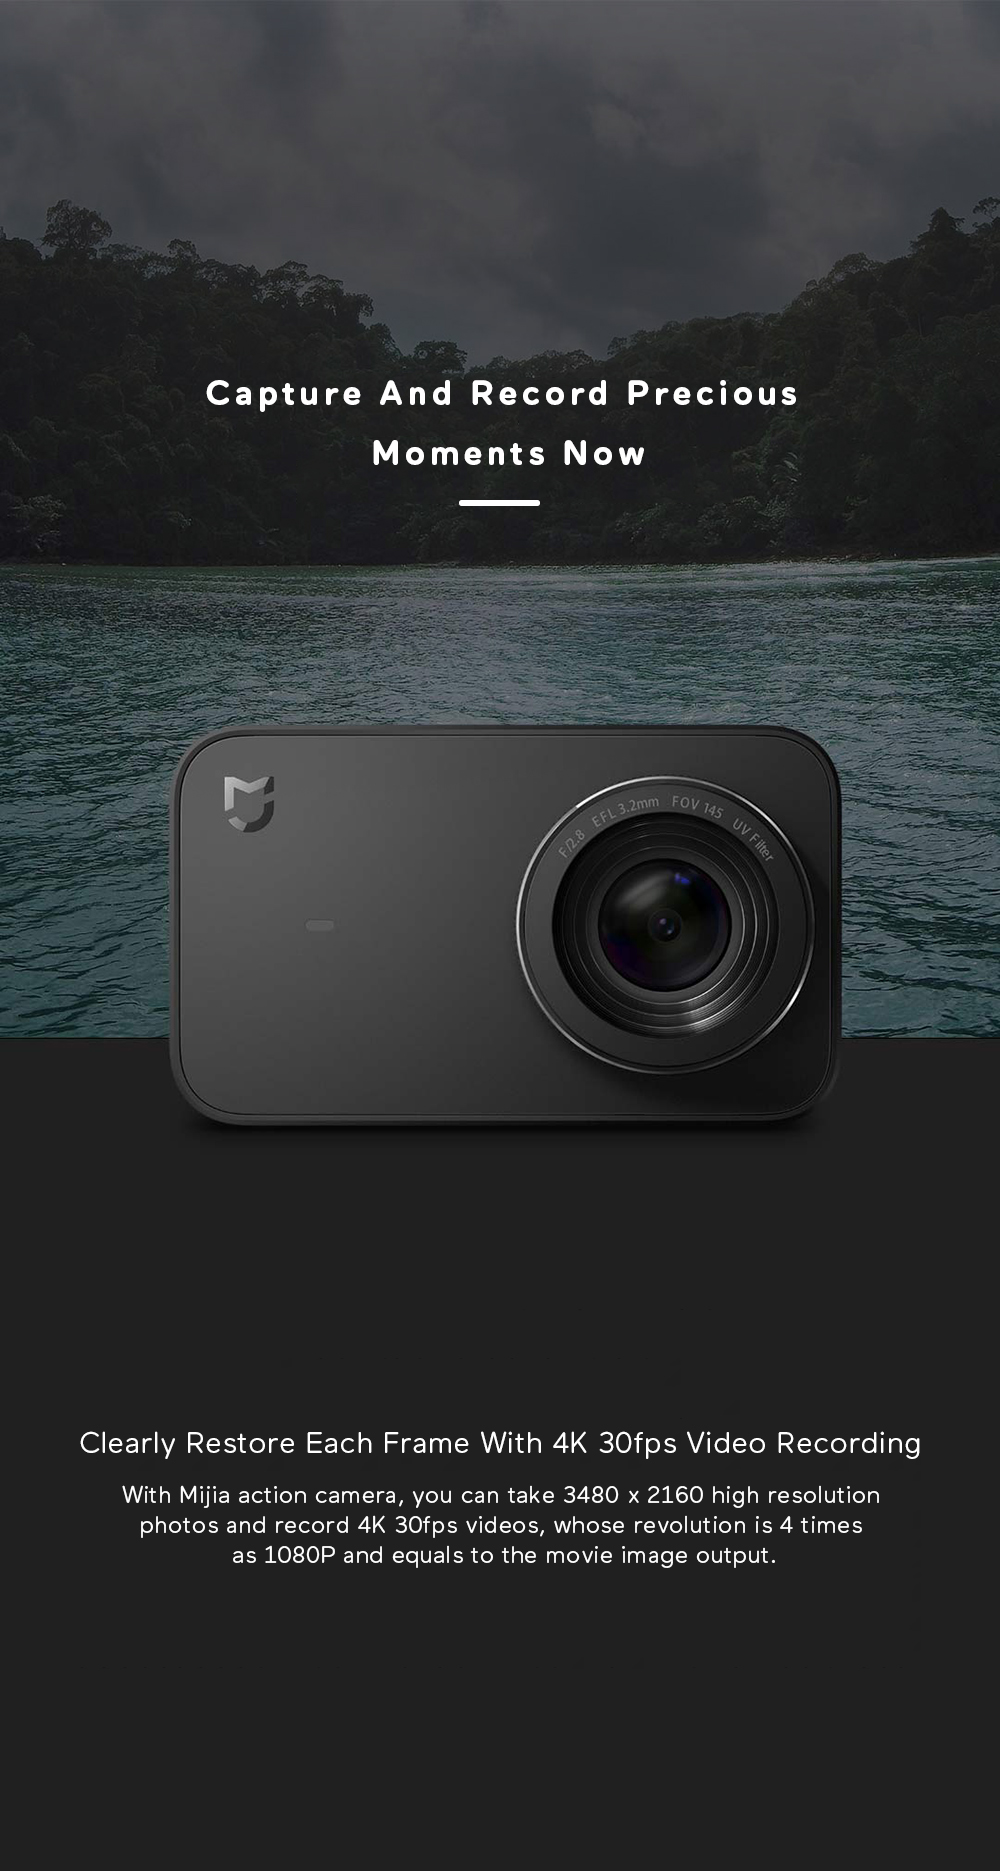 Xiaomi Mijia 4K Ambarella A12S75 Sony IMX317 2,4 - crna - image Xiaomi-Camera-Mijia-4K-Action-Camera-20170824174652954 on https://smartmall.hr